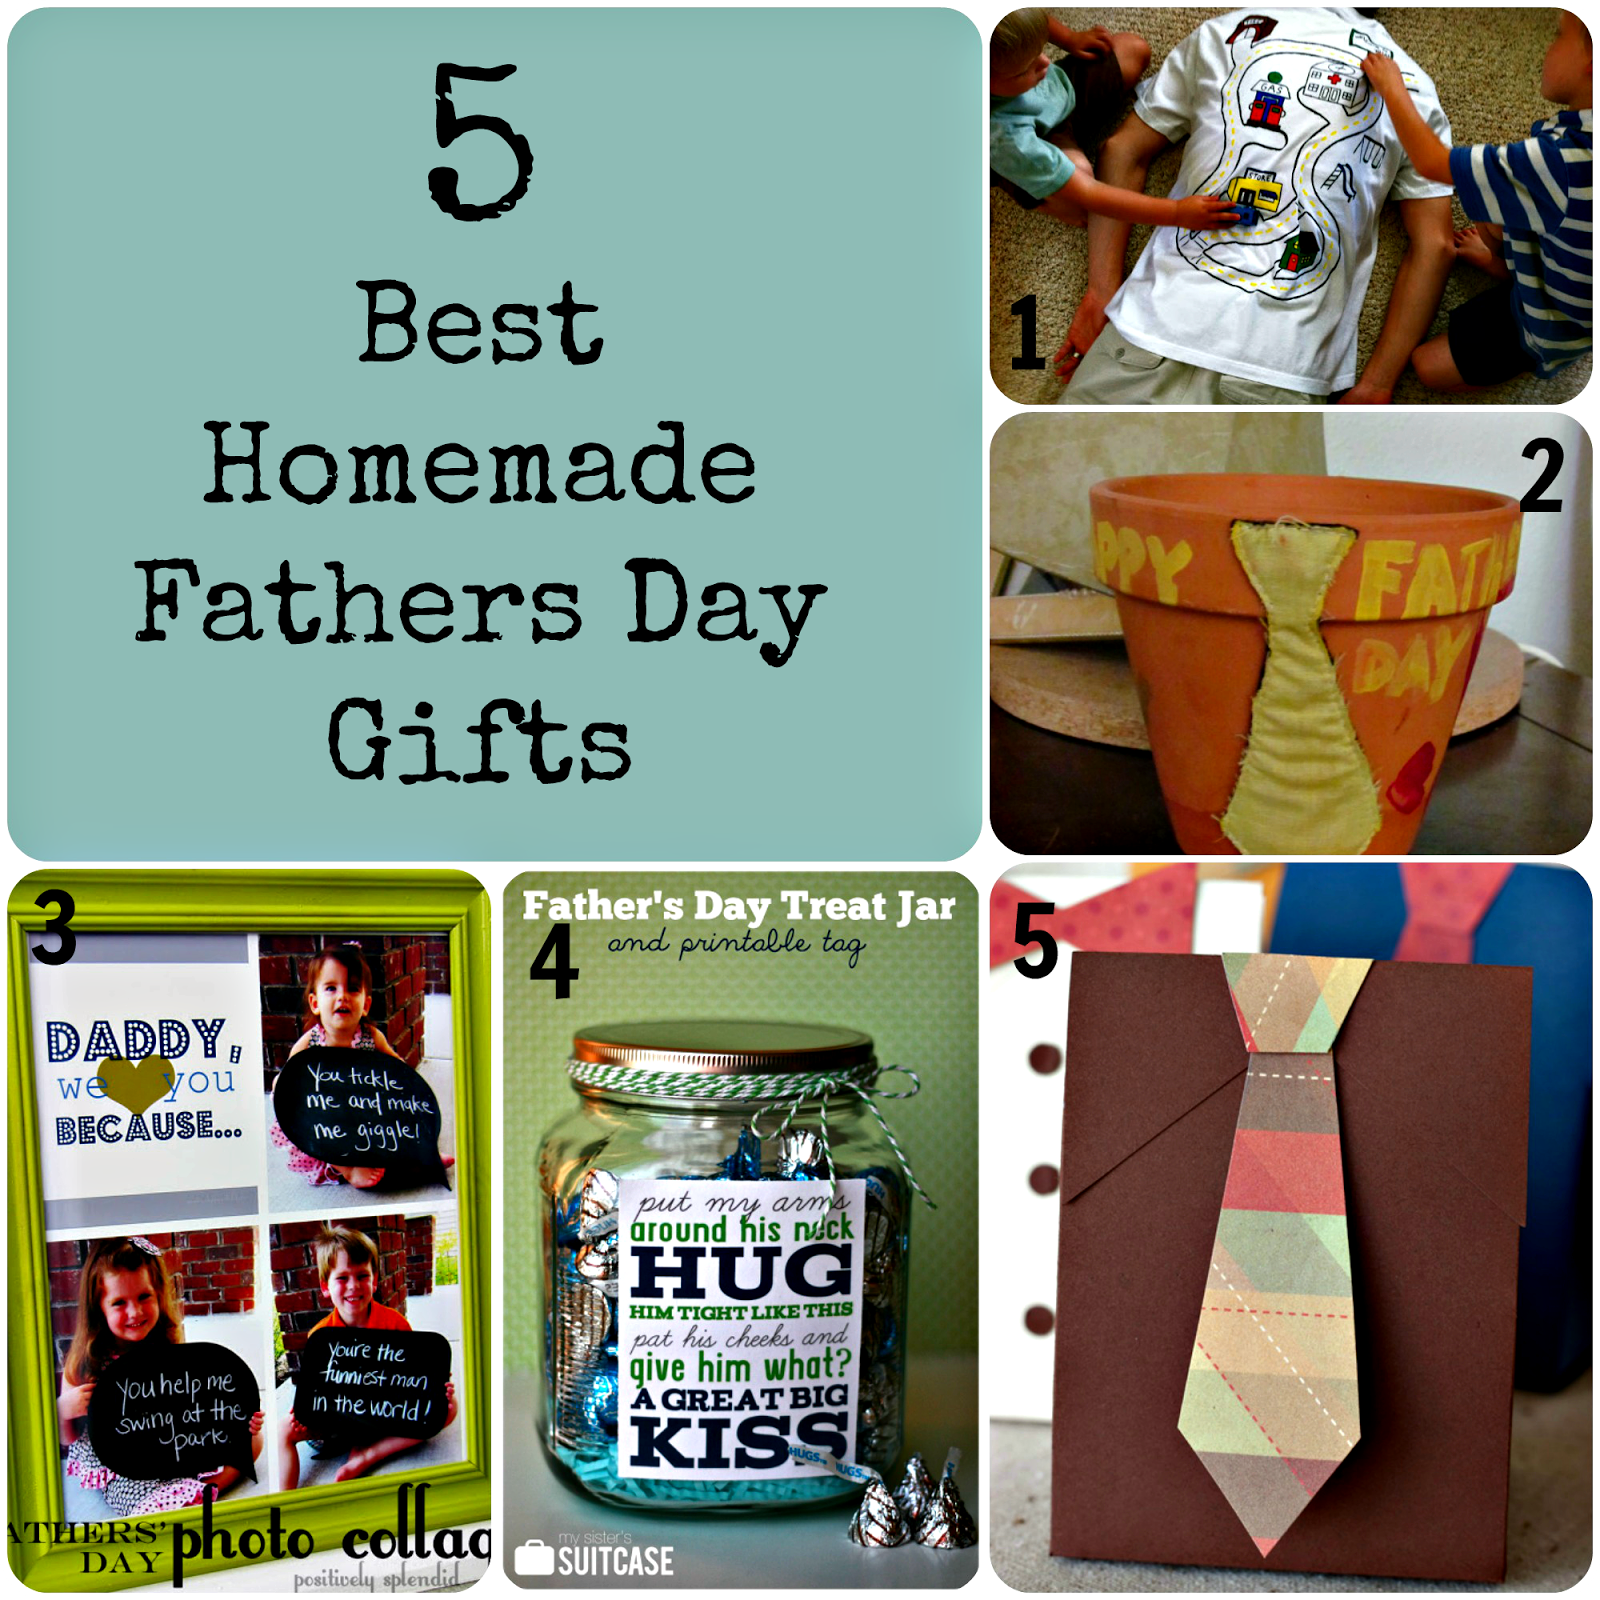 Make One Of These Homemade Fathers Day Gifts To Share Your Love With Dad